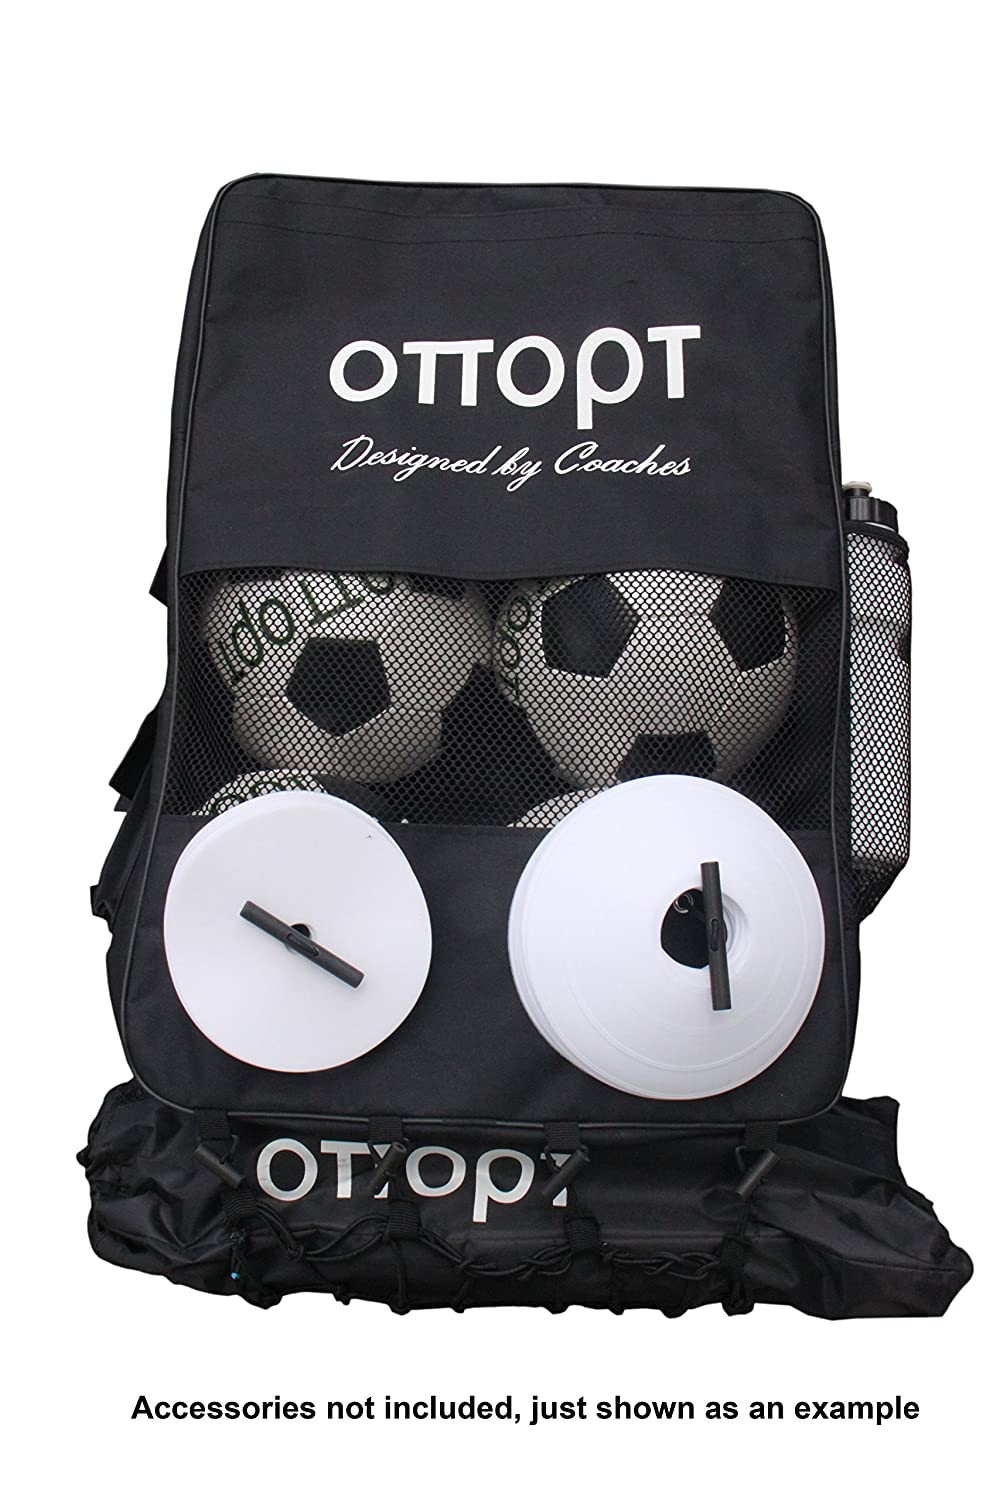 6 Ball Bag - Match day back pack OTTOPT MatchPack